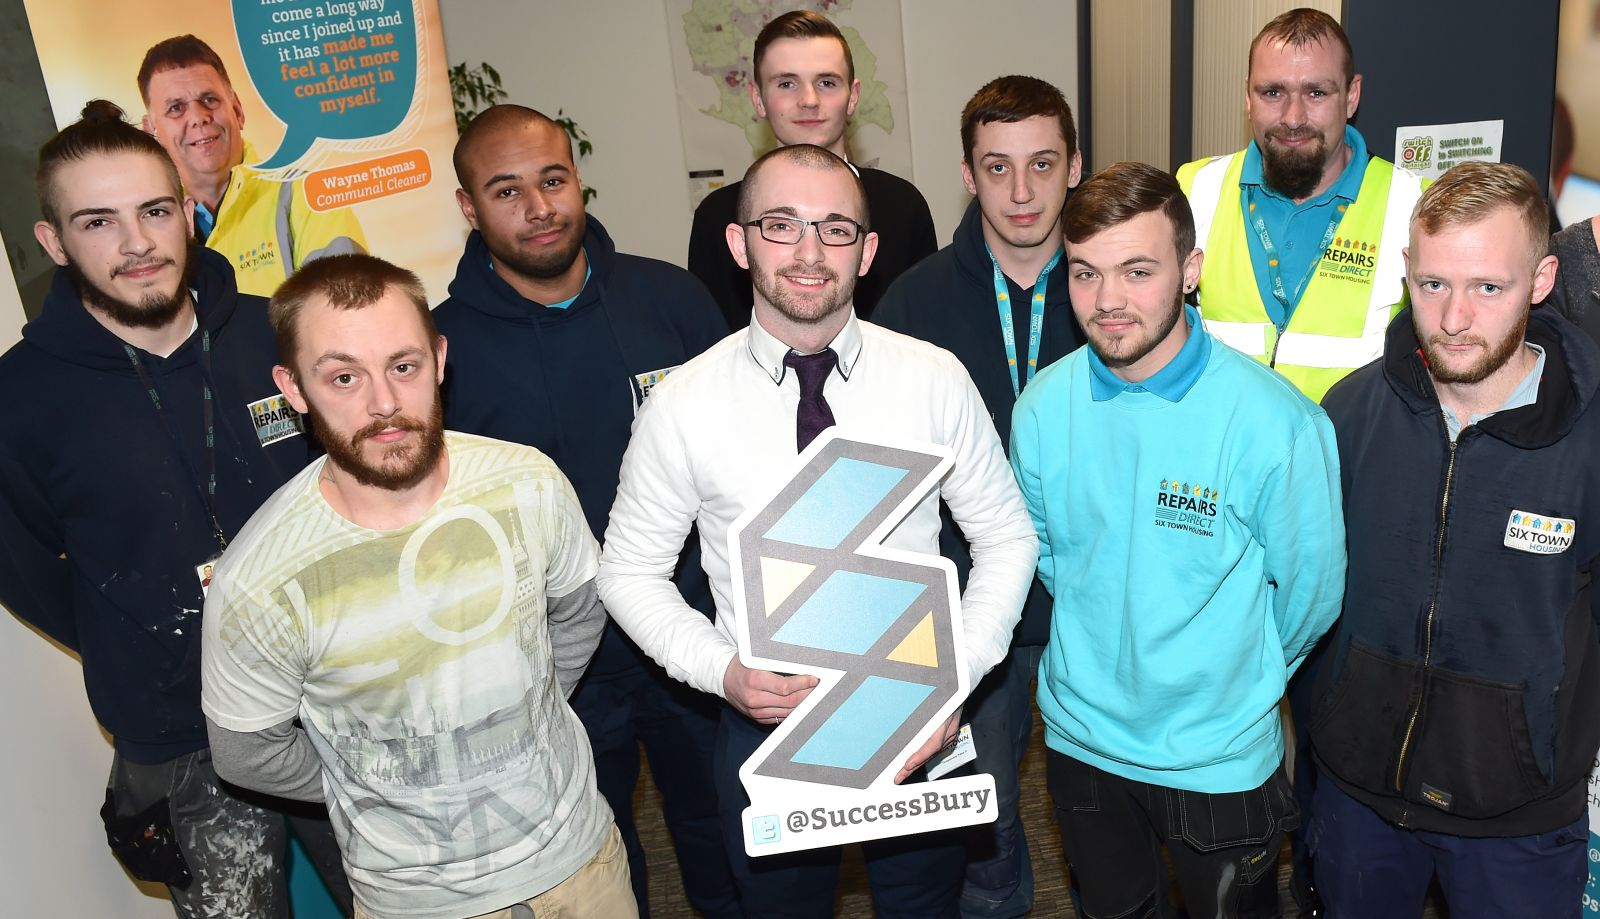 Several tenants who have accessed Steps To Success apprenticeships or work placements